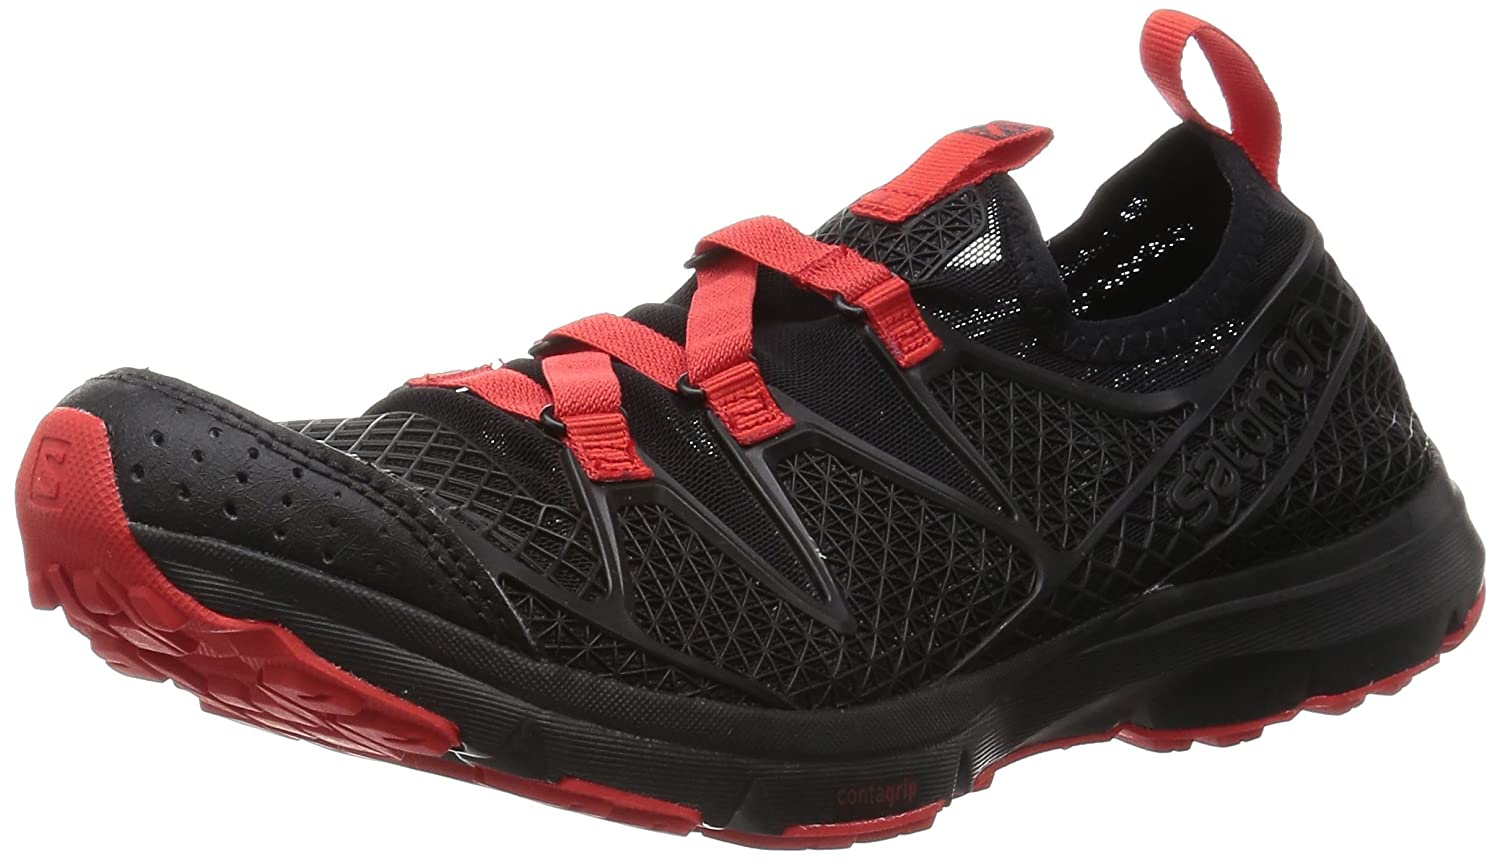 Salomon Crossamphibian, Zapatillas de Trail Running para Hombre 42 2/3 EU|Negro (Black/Black/Radiant Red)